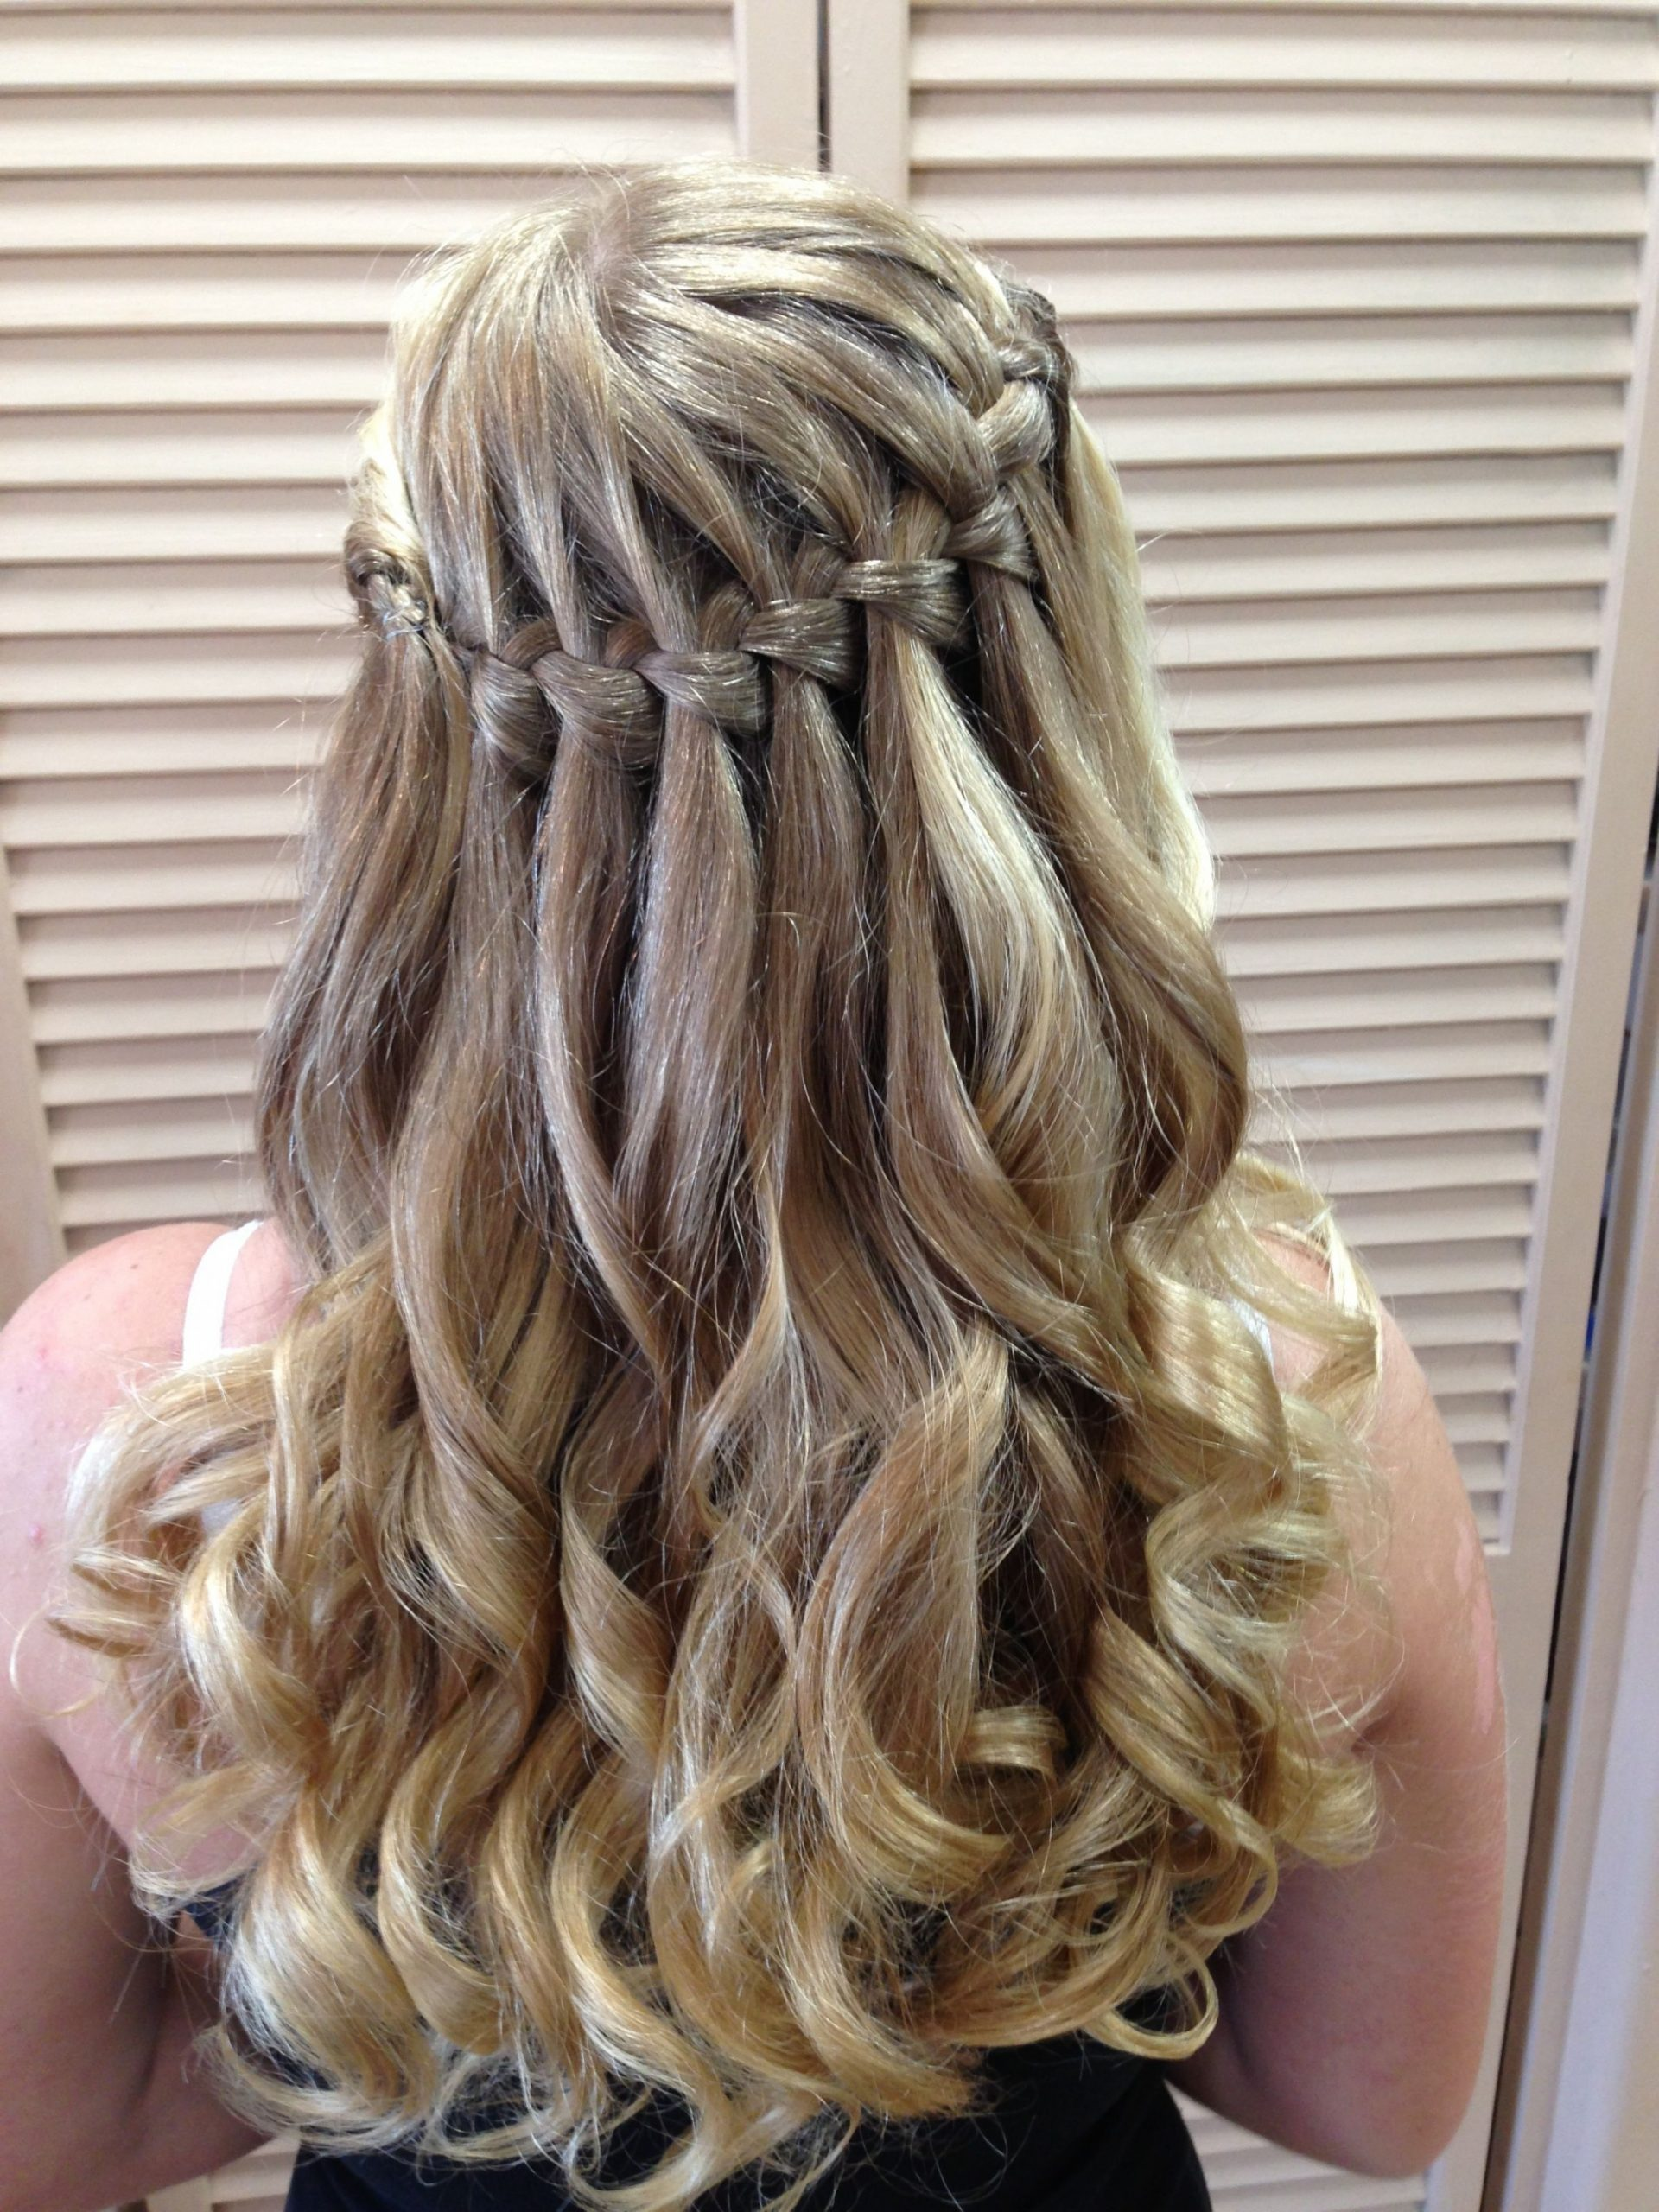 Hairstyles For Girls Dances  Dance hairstyles, Graduation